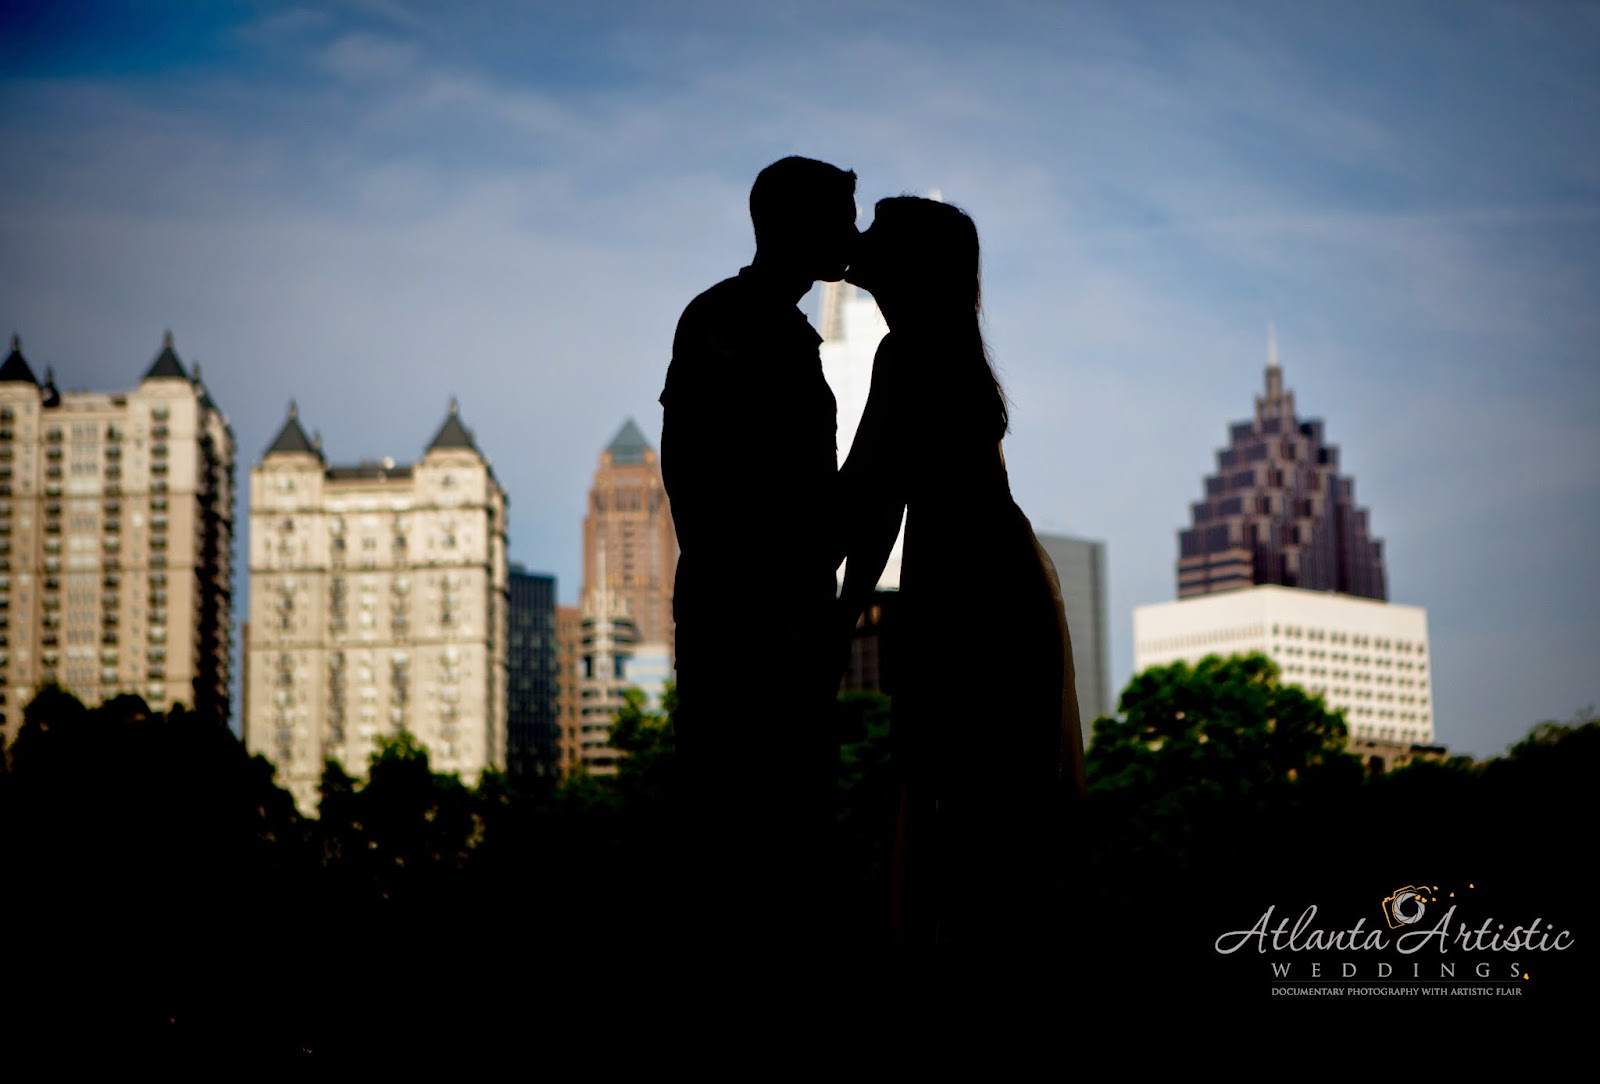 wedding photography by www.atlantaartisticweddings.com